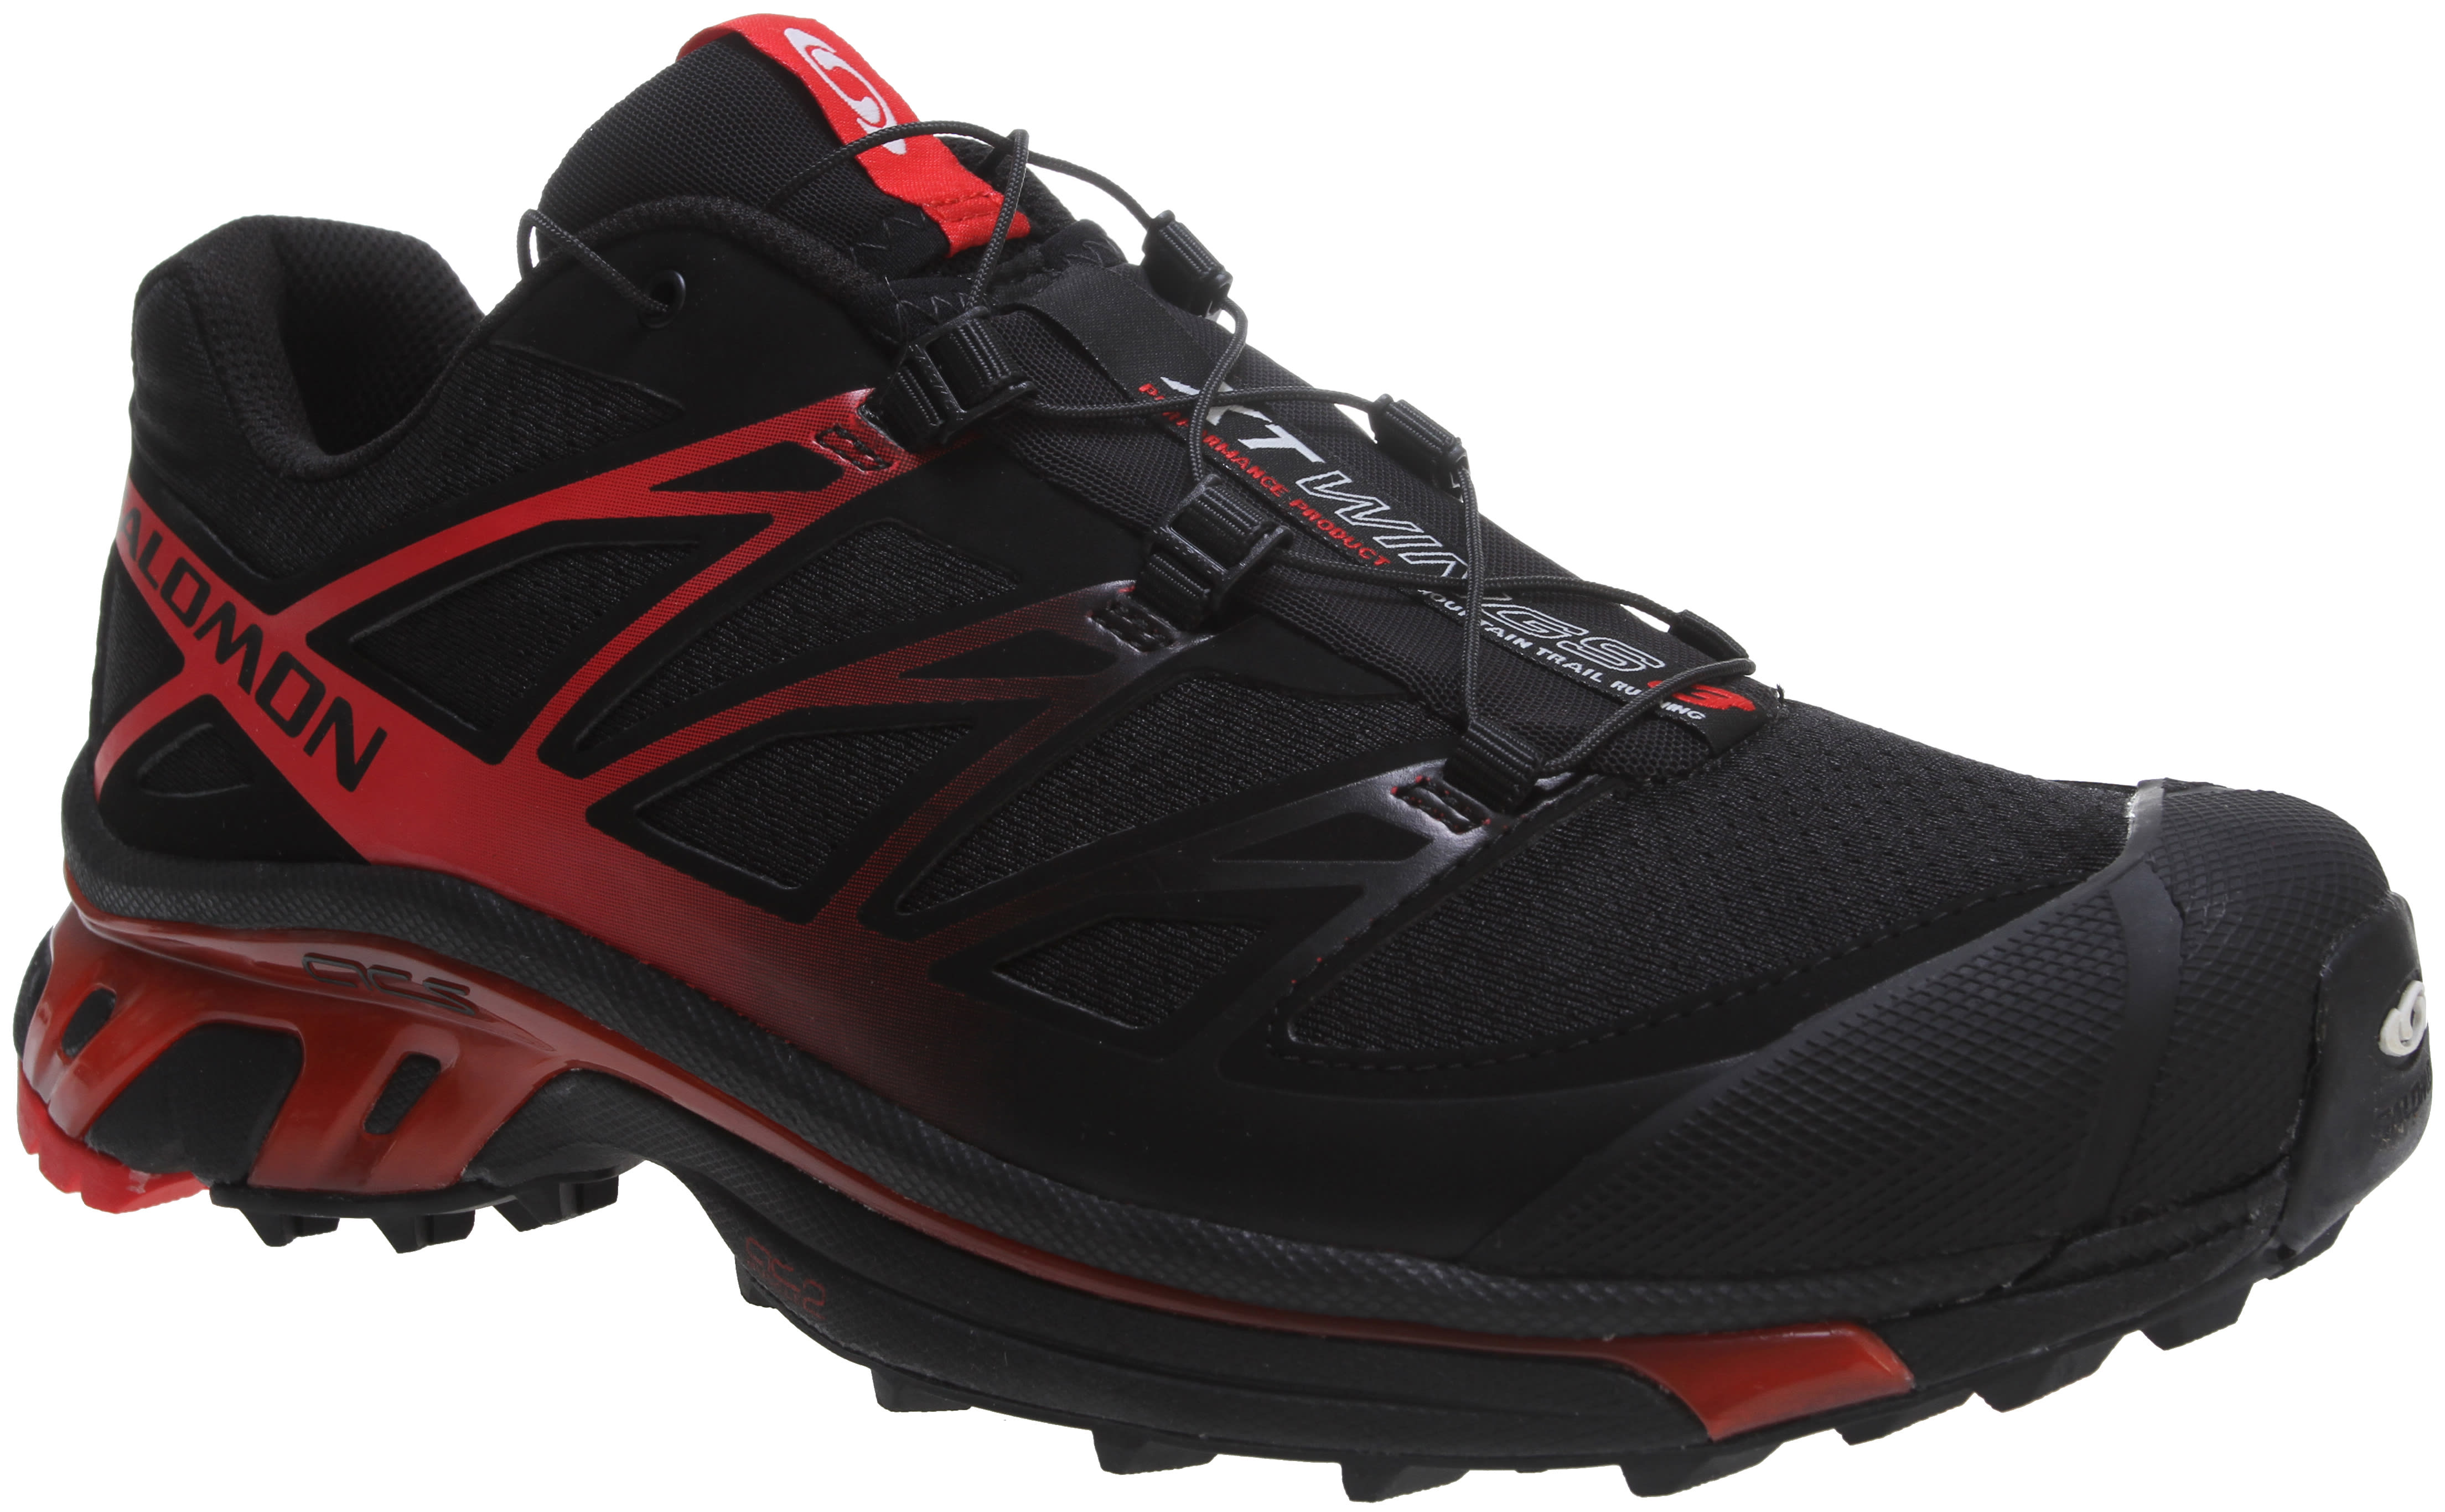 reputable site 6a30f 6dd1b coupon code for salomon xt wings 3 rot d5732 b762b